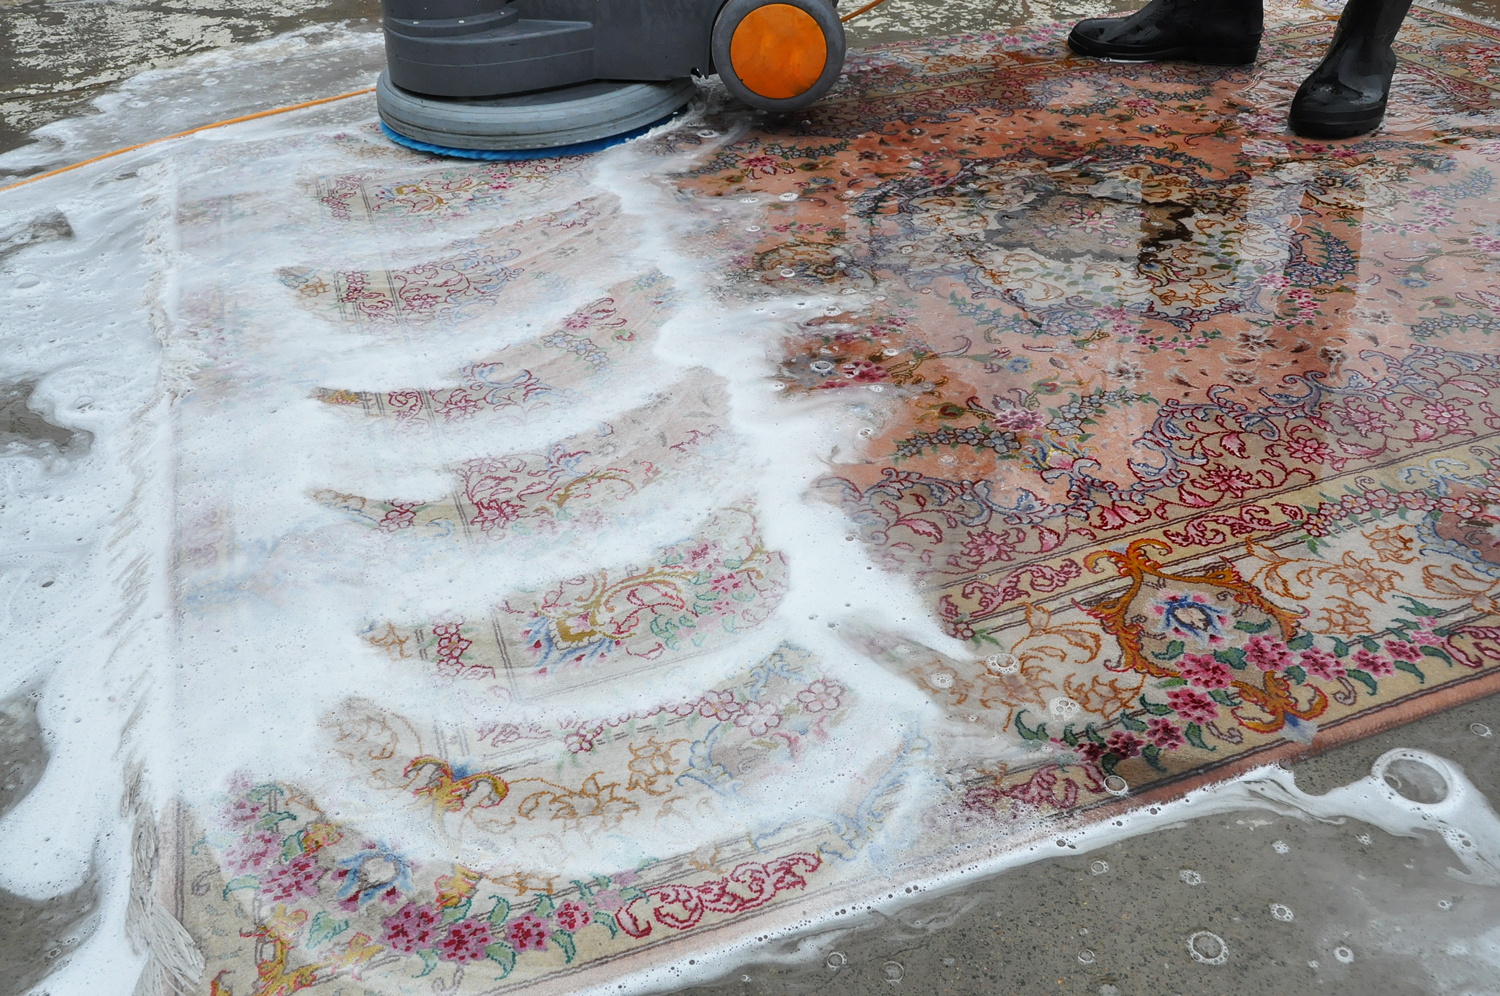 Cleaning-process-karimi-rug-02.jpg